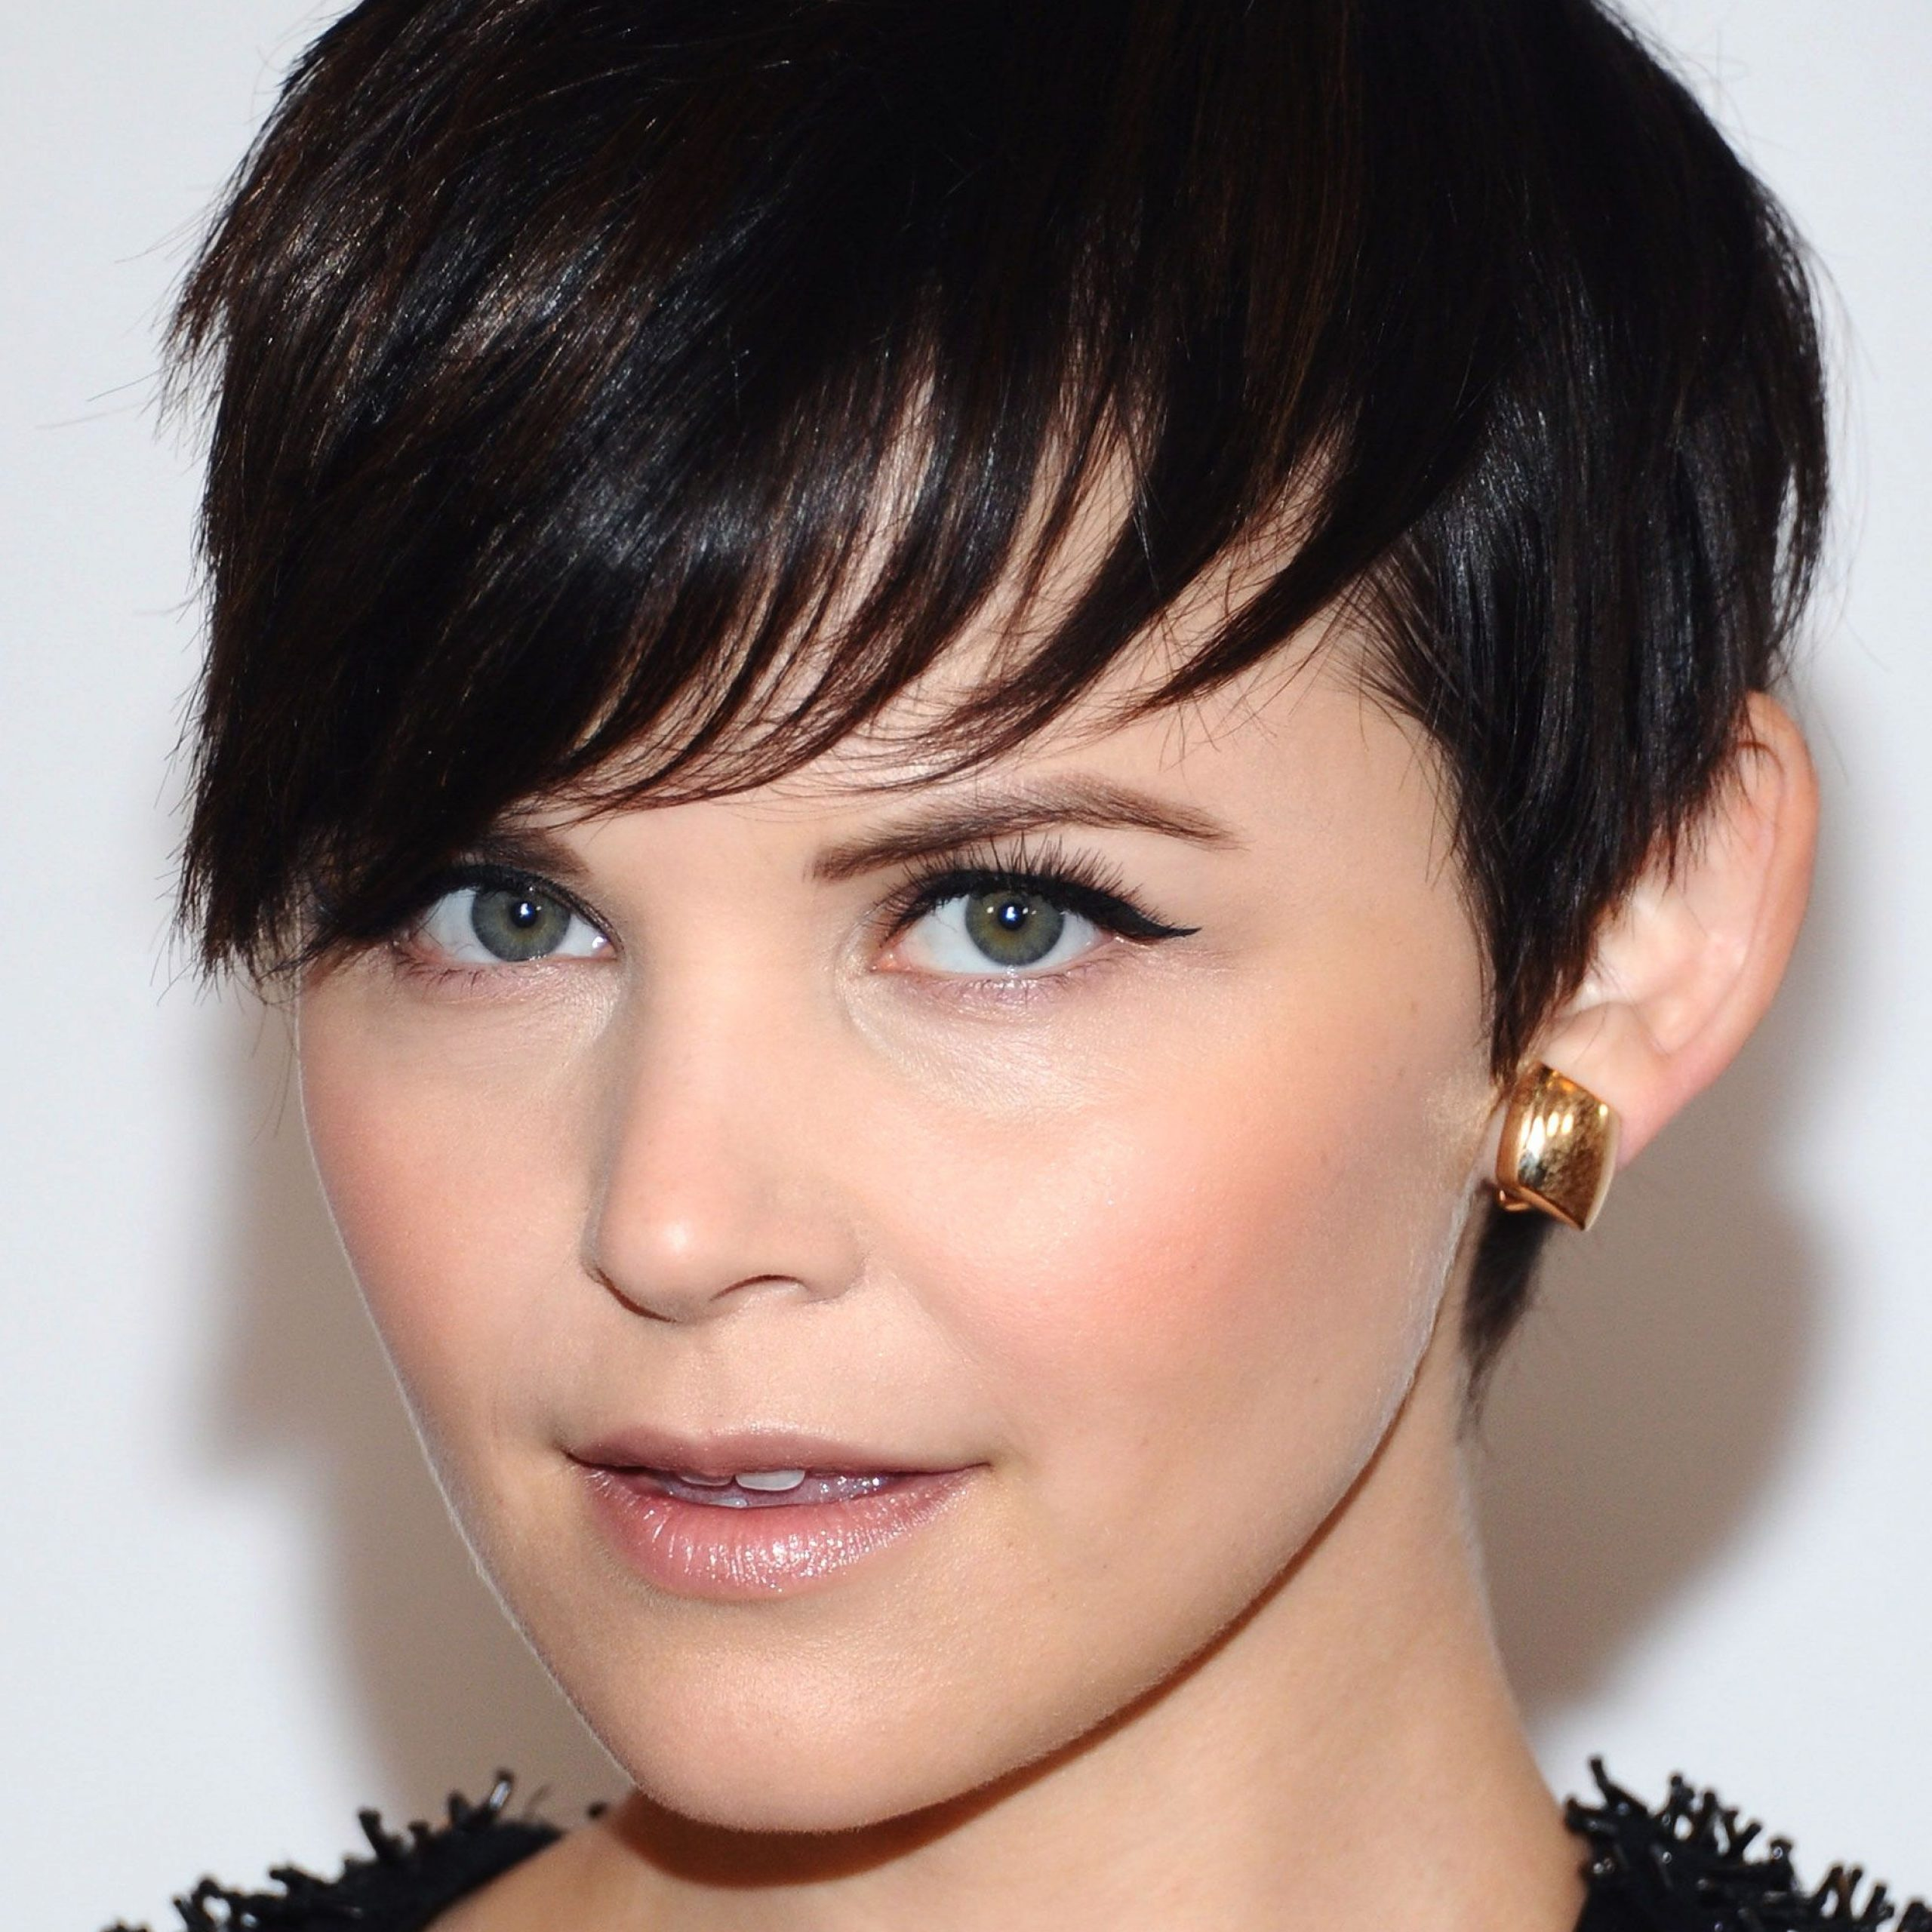 60+ Pixie Cuts We Love For 2020 – Short Pixie Hairstyles Throughout Recent Short Shaggy Pixie Hairstyles (View 11 of 20)